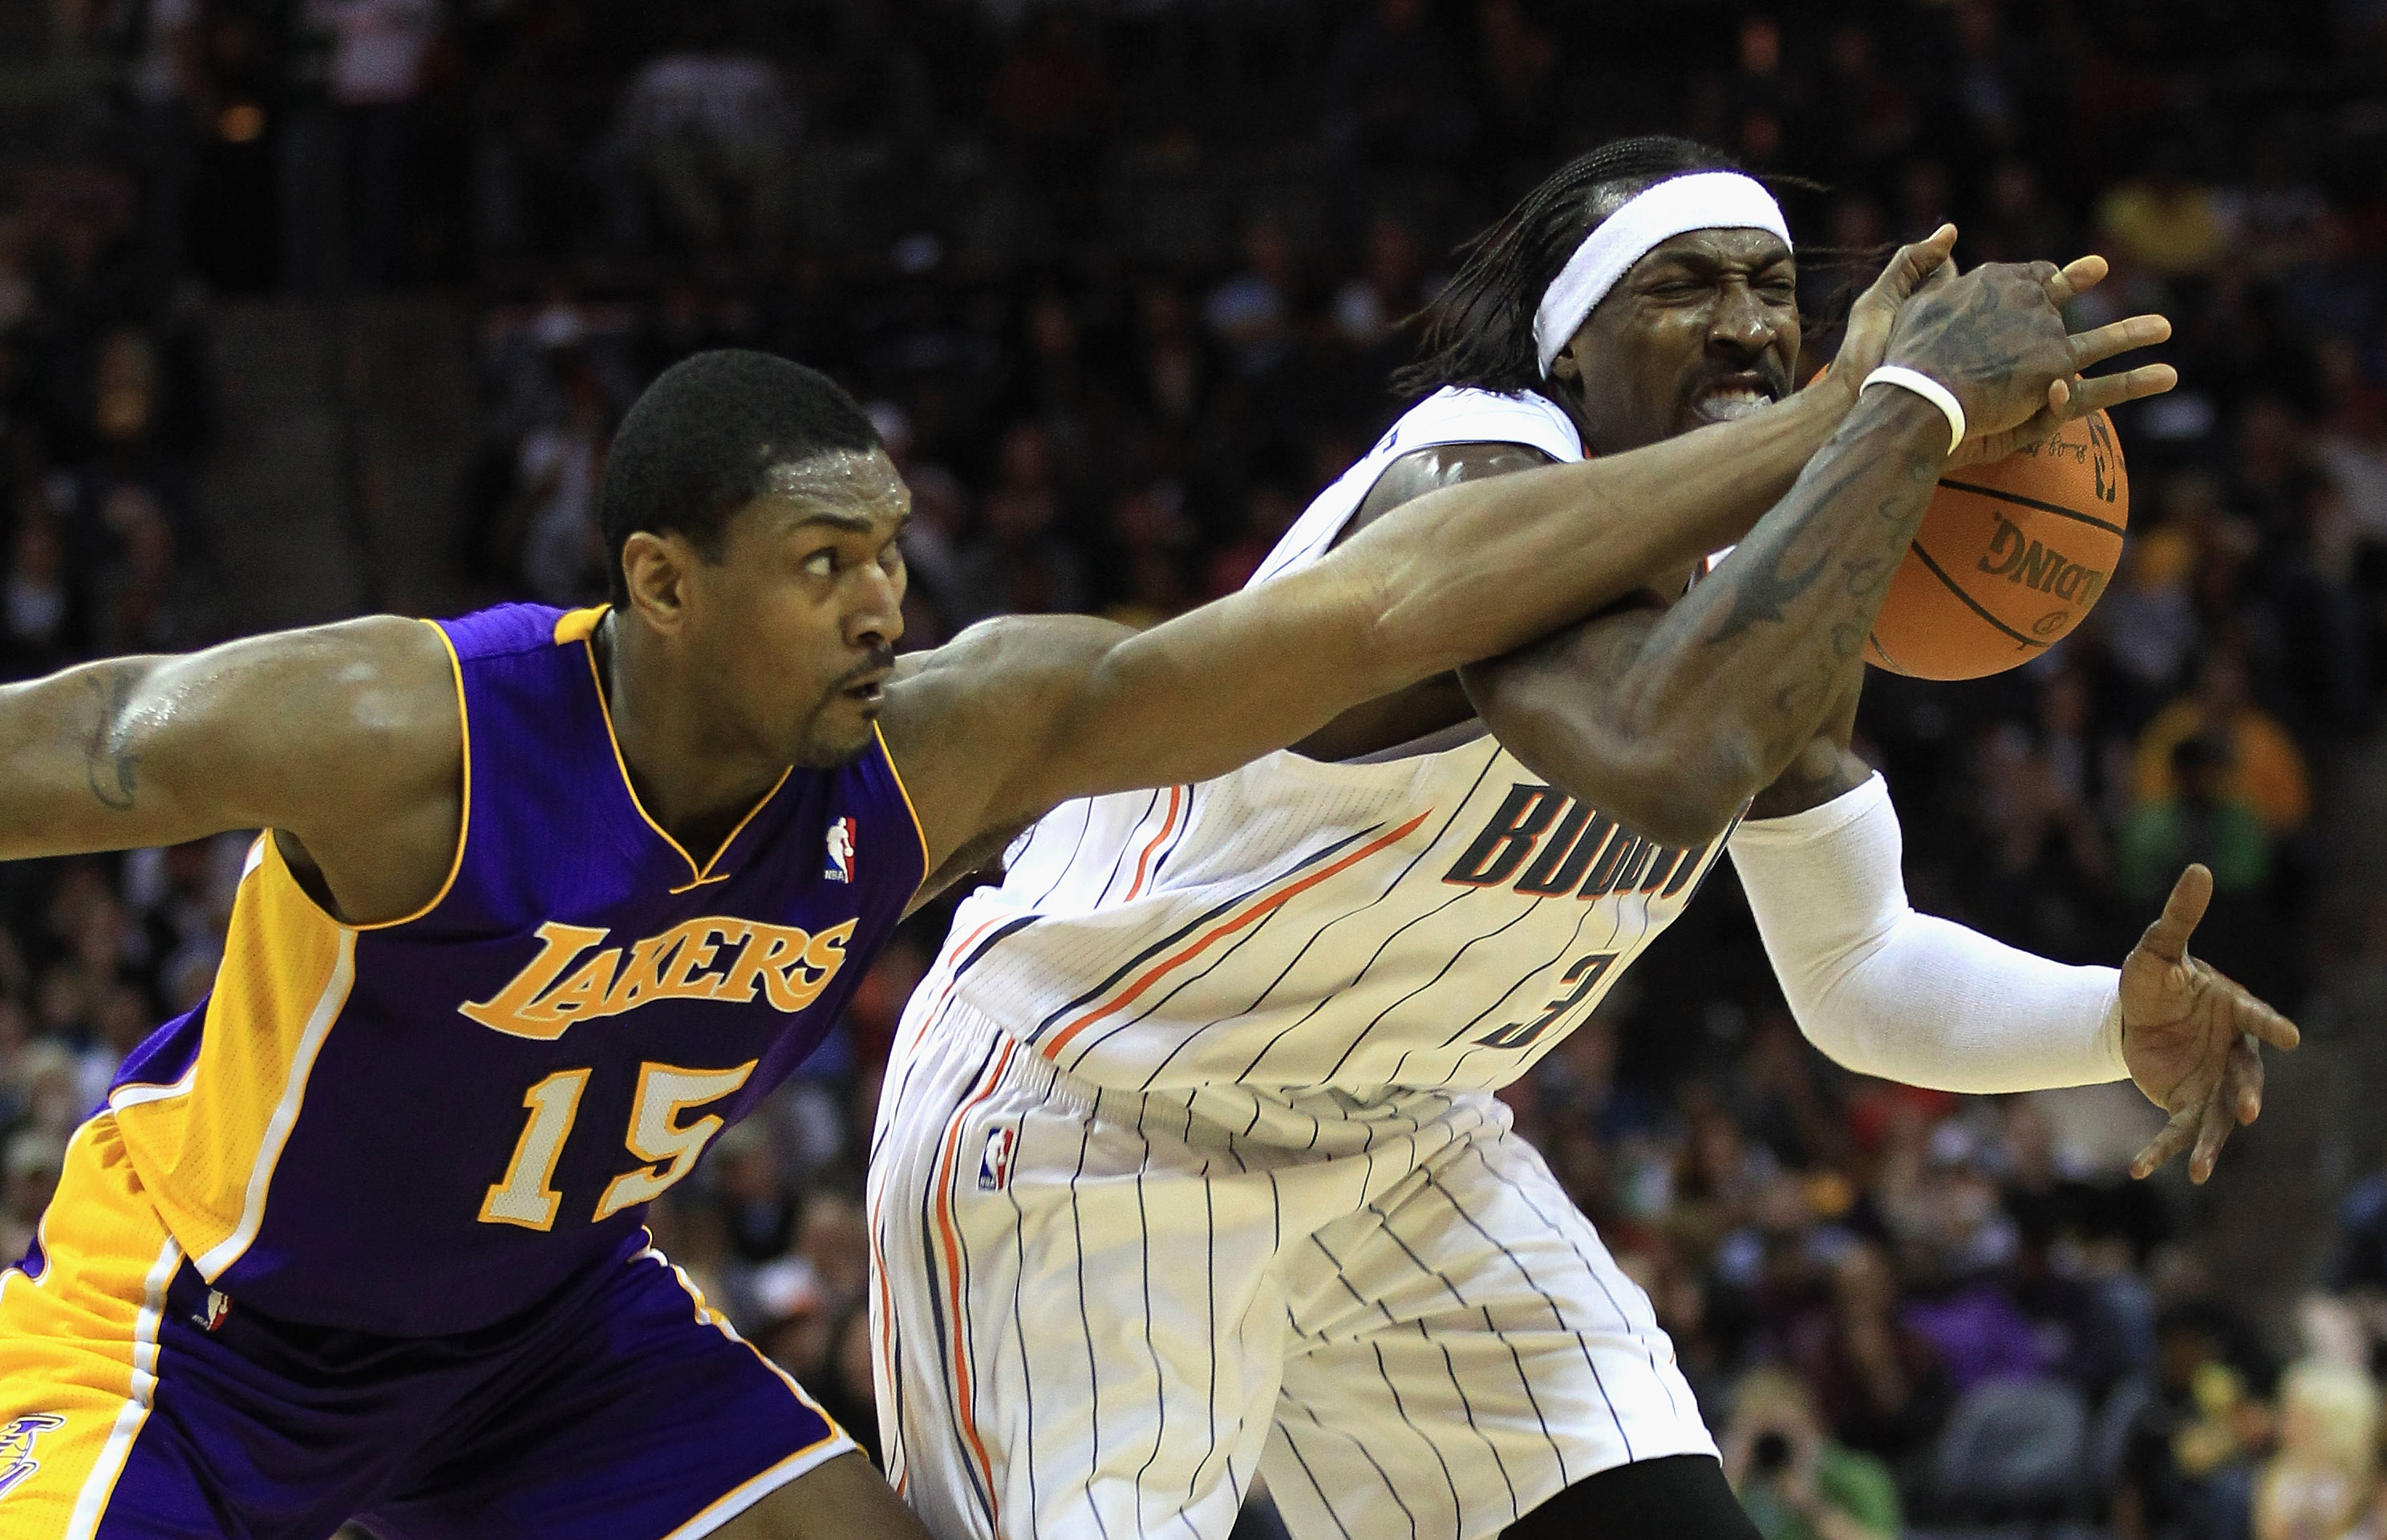 CHARLOTTE, NC - FEBRUARY 14:  Ron Artest #15 of the Los Angeles Lakers knocks the ball loose from Gerald Wallace #3 of the Charlotte Bobcats during their game at Time Warner Cable Arena on February 14, 2011 in Charlotte, North Carolina. NOTE TO USER: User